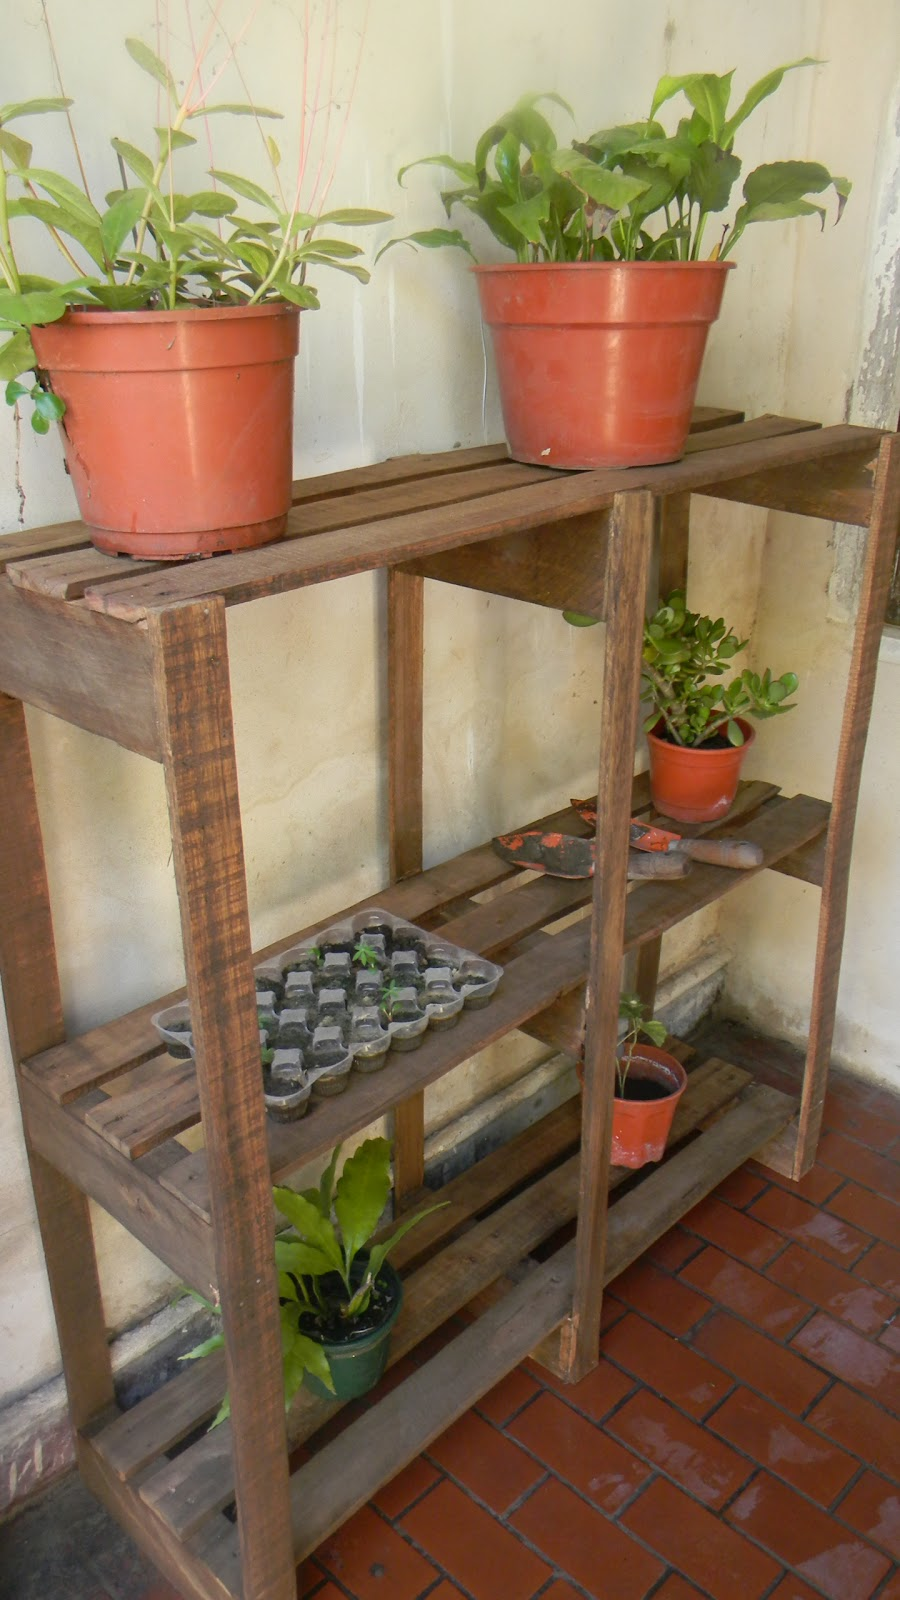 Muebles reciclados casagrande estanter a para plantas de for Muebles para plantas